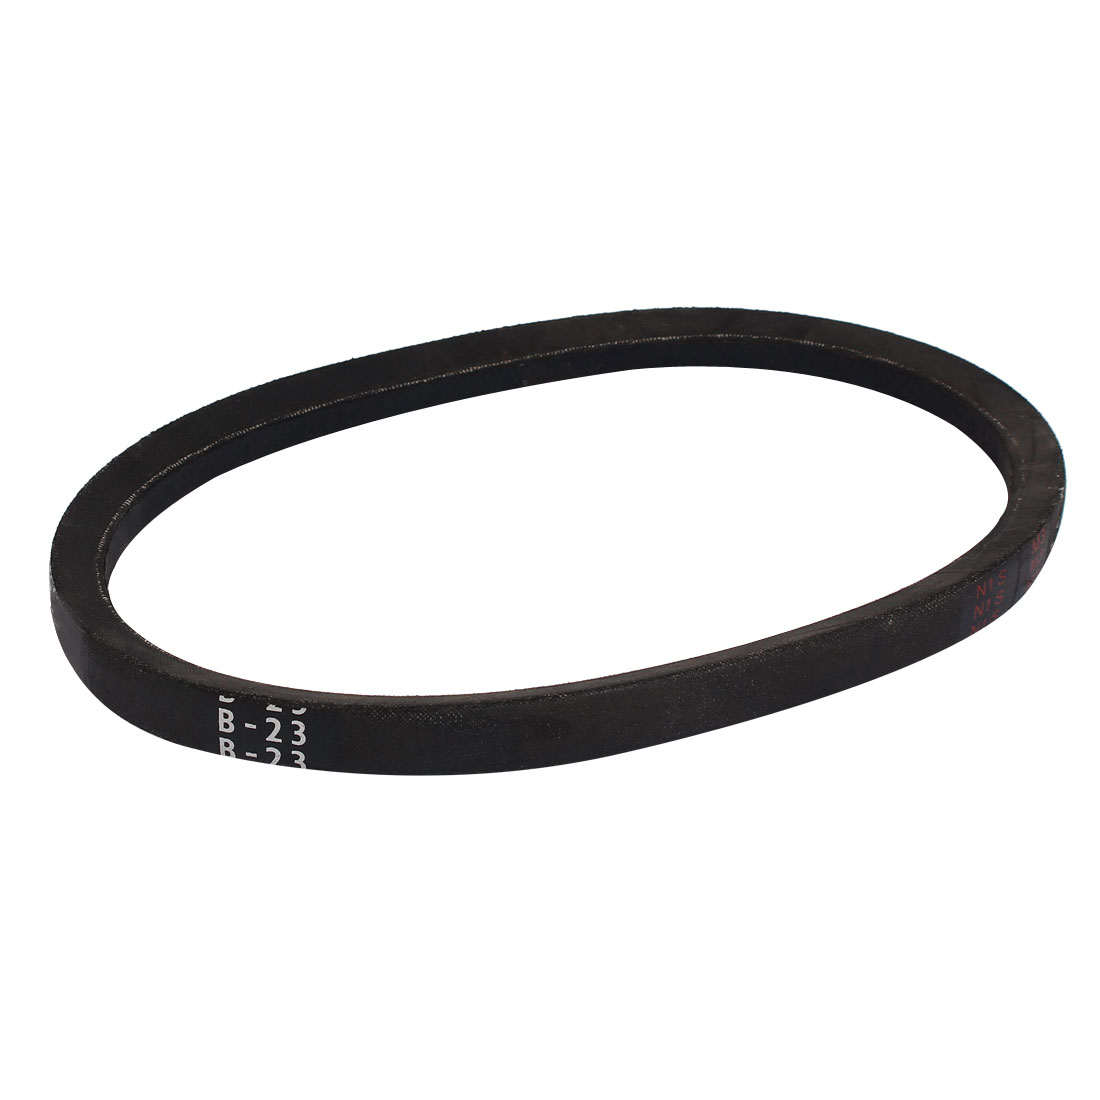 B23 Rubber V-shaped Drive Belt Black 11mm Thick 23-inch x 0.67-inch